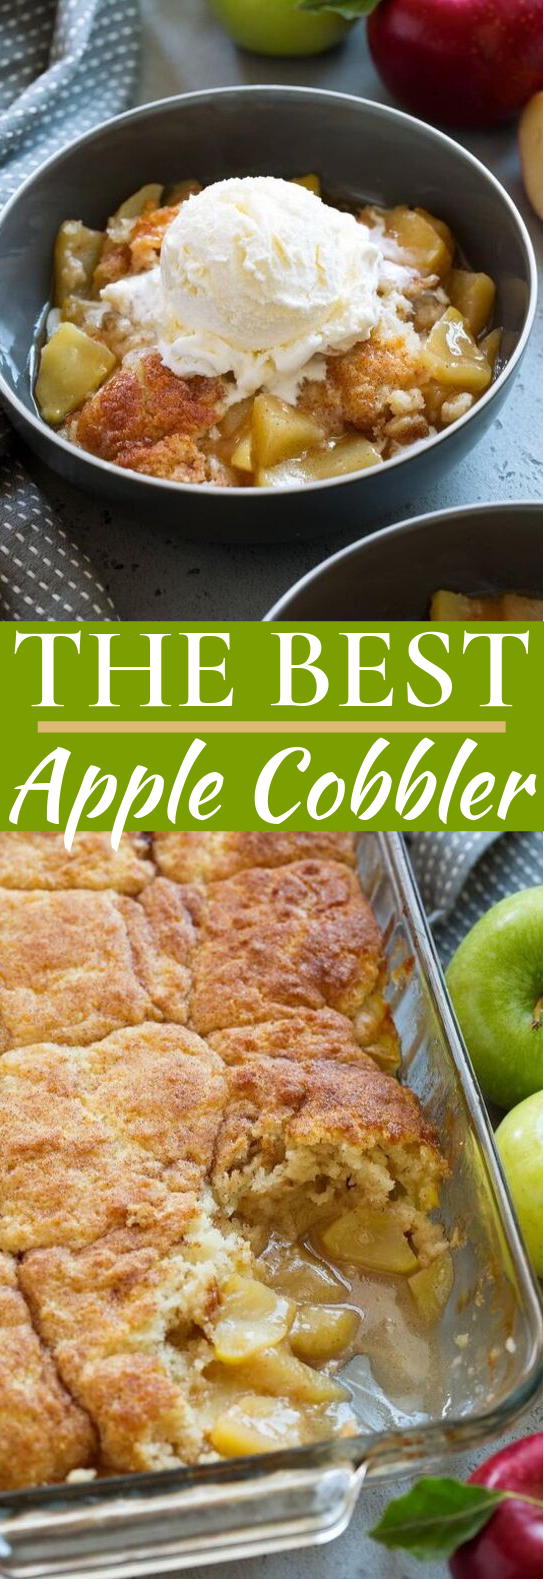 Apple Cobbler #desserts #apple